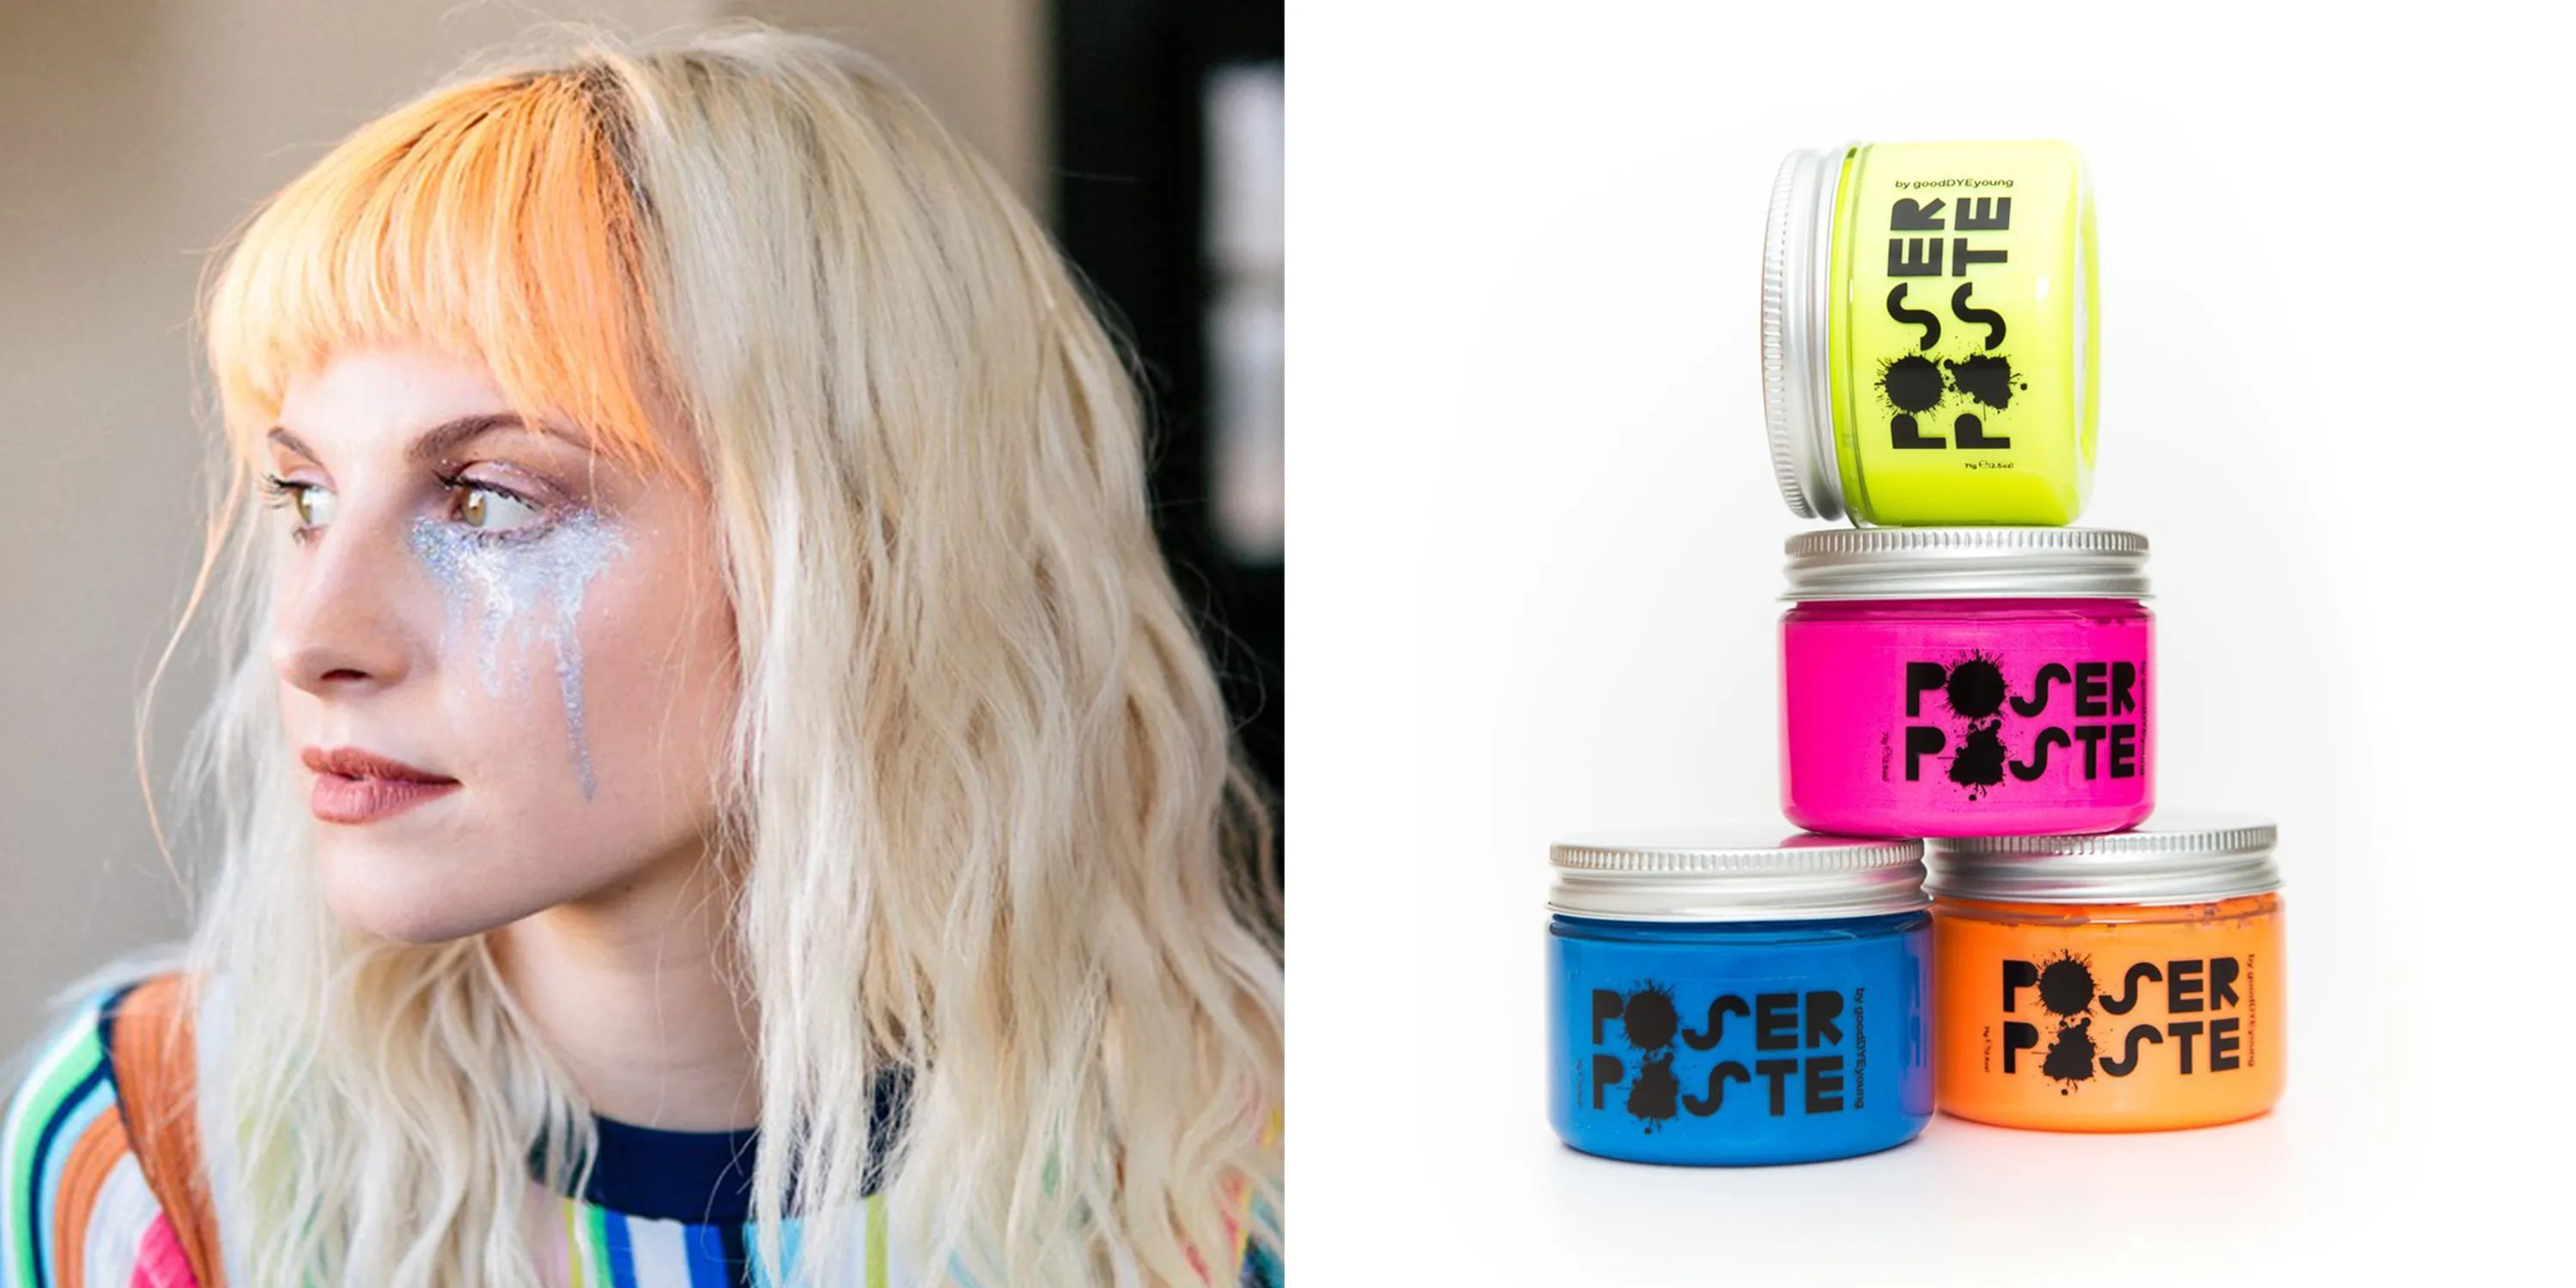 GoodDyeYoung Poser Paste Lets You Change Your Hair Color